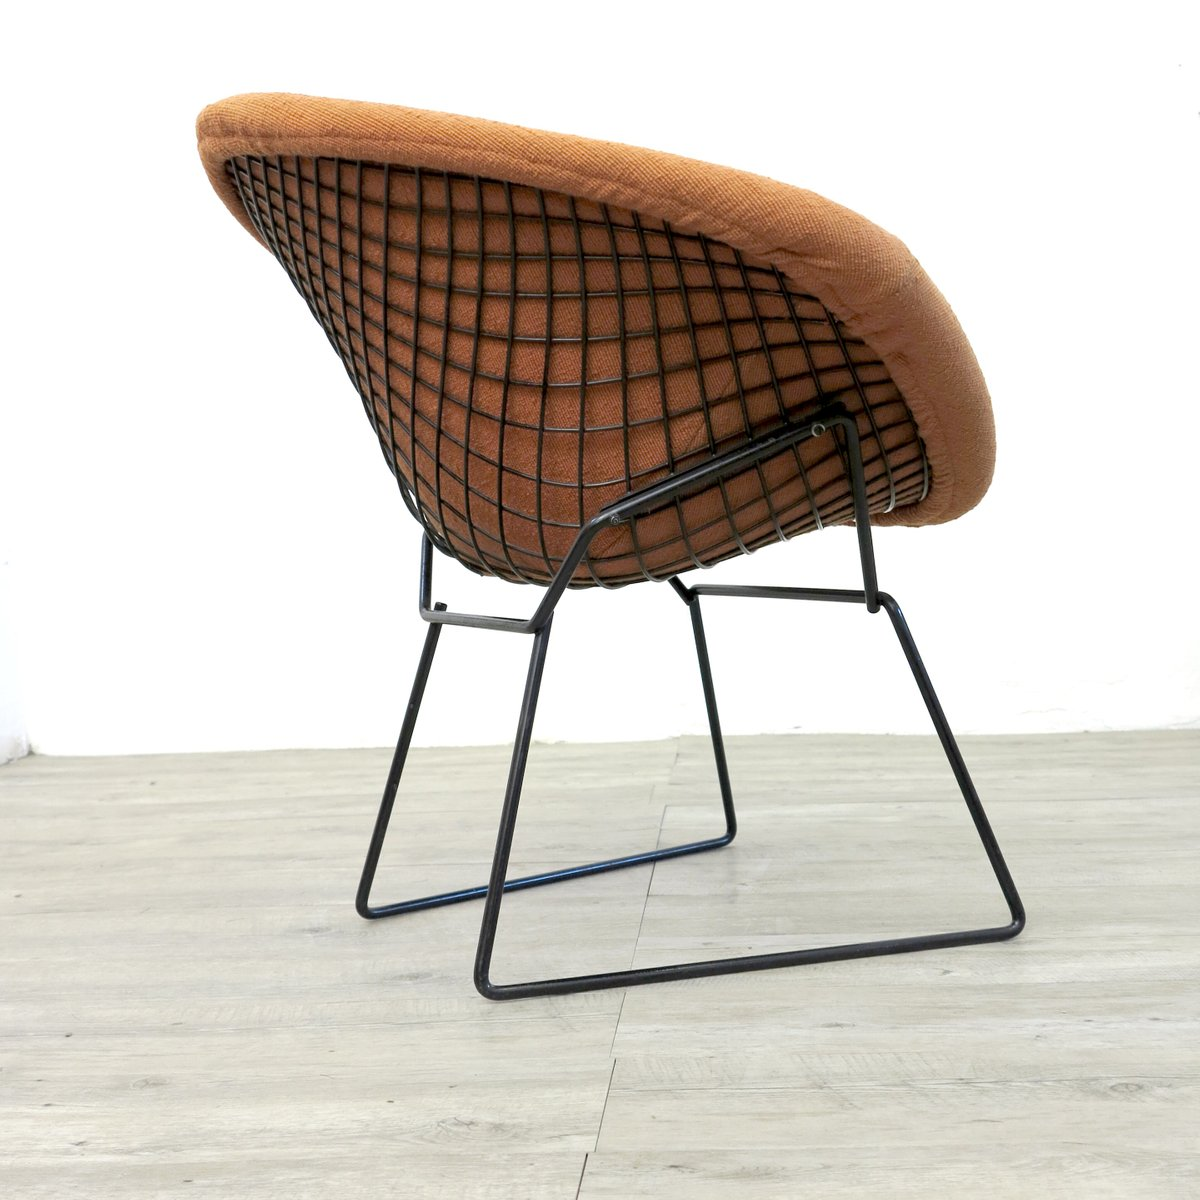 vintage diamond chair by harry bertoia for knoll 1970s for sale at pamono. Black Bedroom Furniture Sets. Home Design Ideas